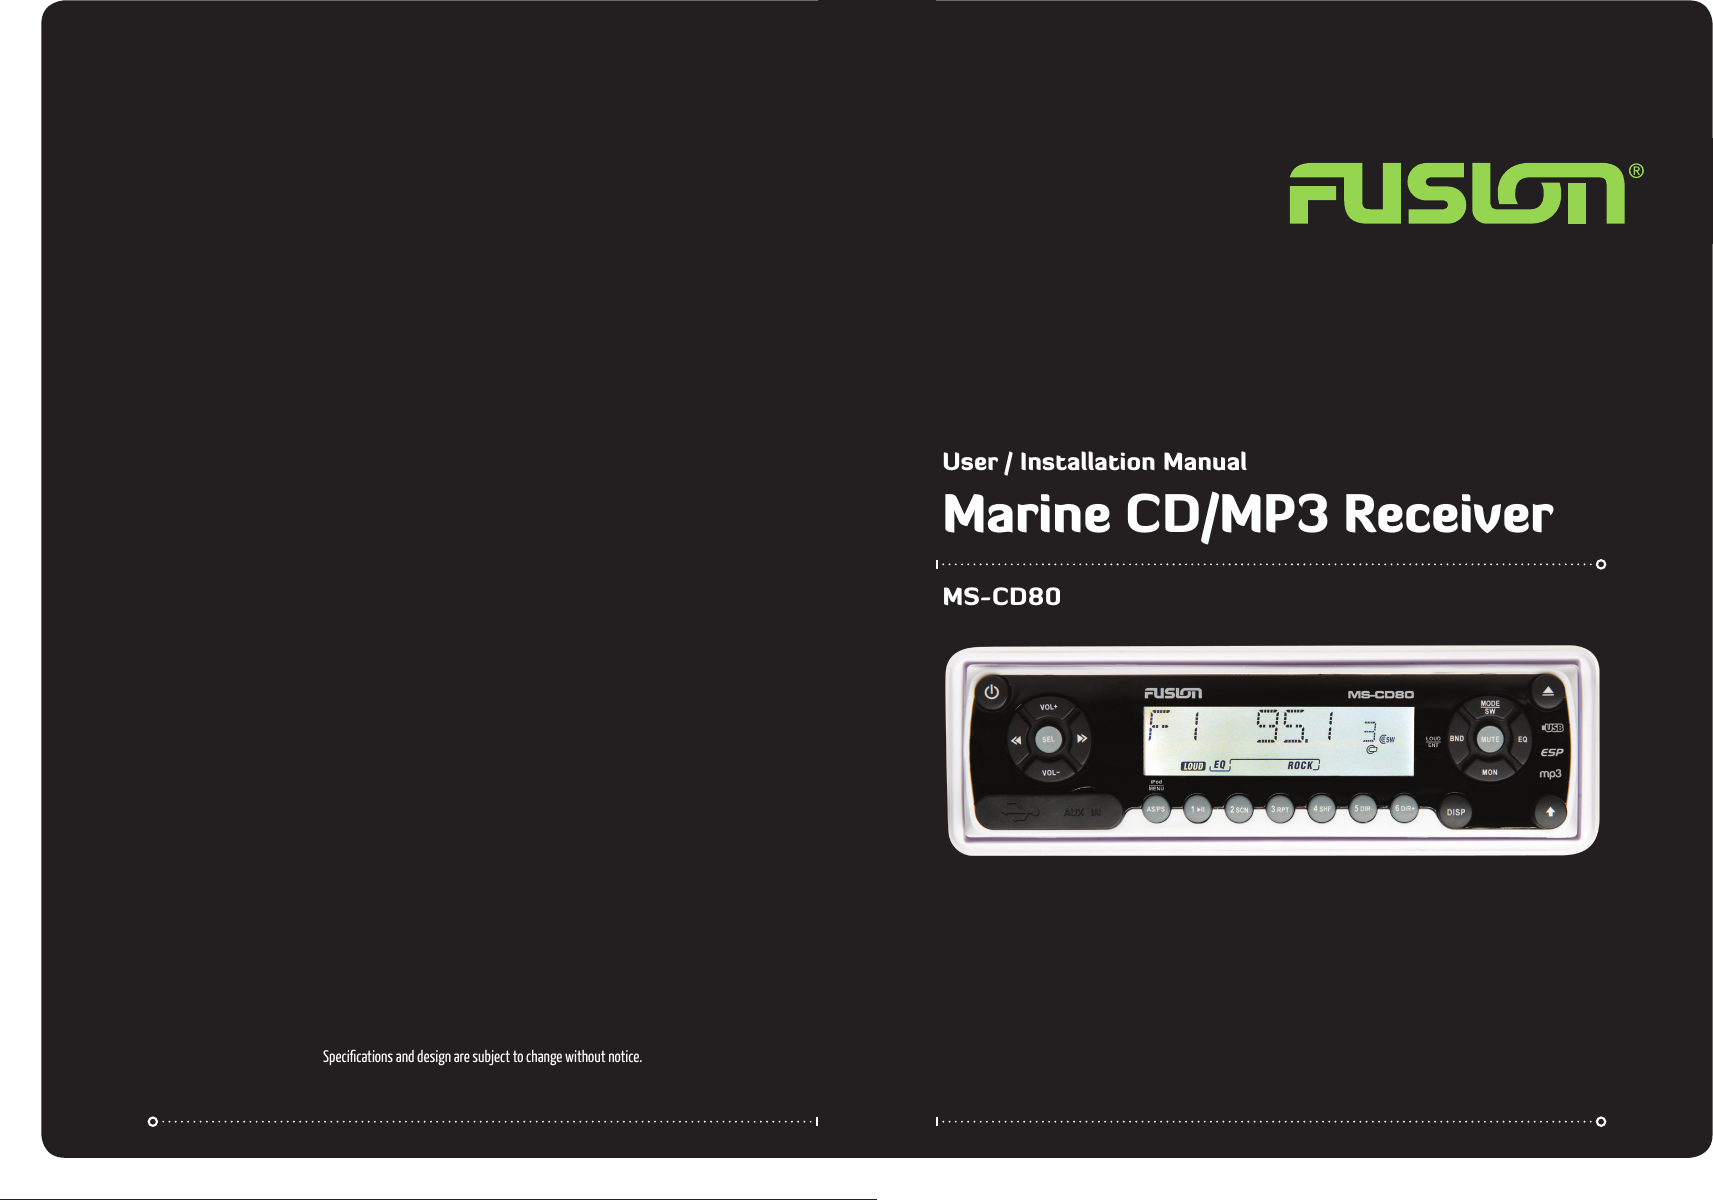 fusion electronics car stereo system ms cd80 users manual v1 4 rh usermanual wiki Ford Fusion Coupe Jaguar Cars